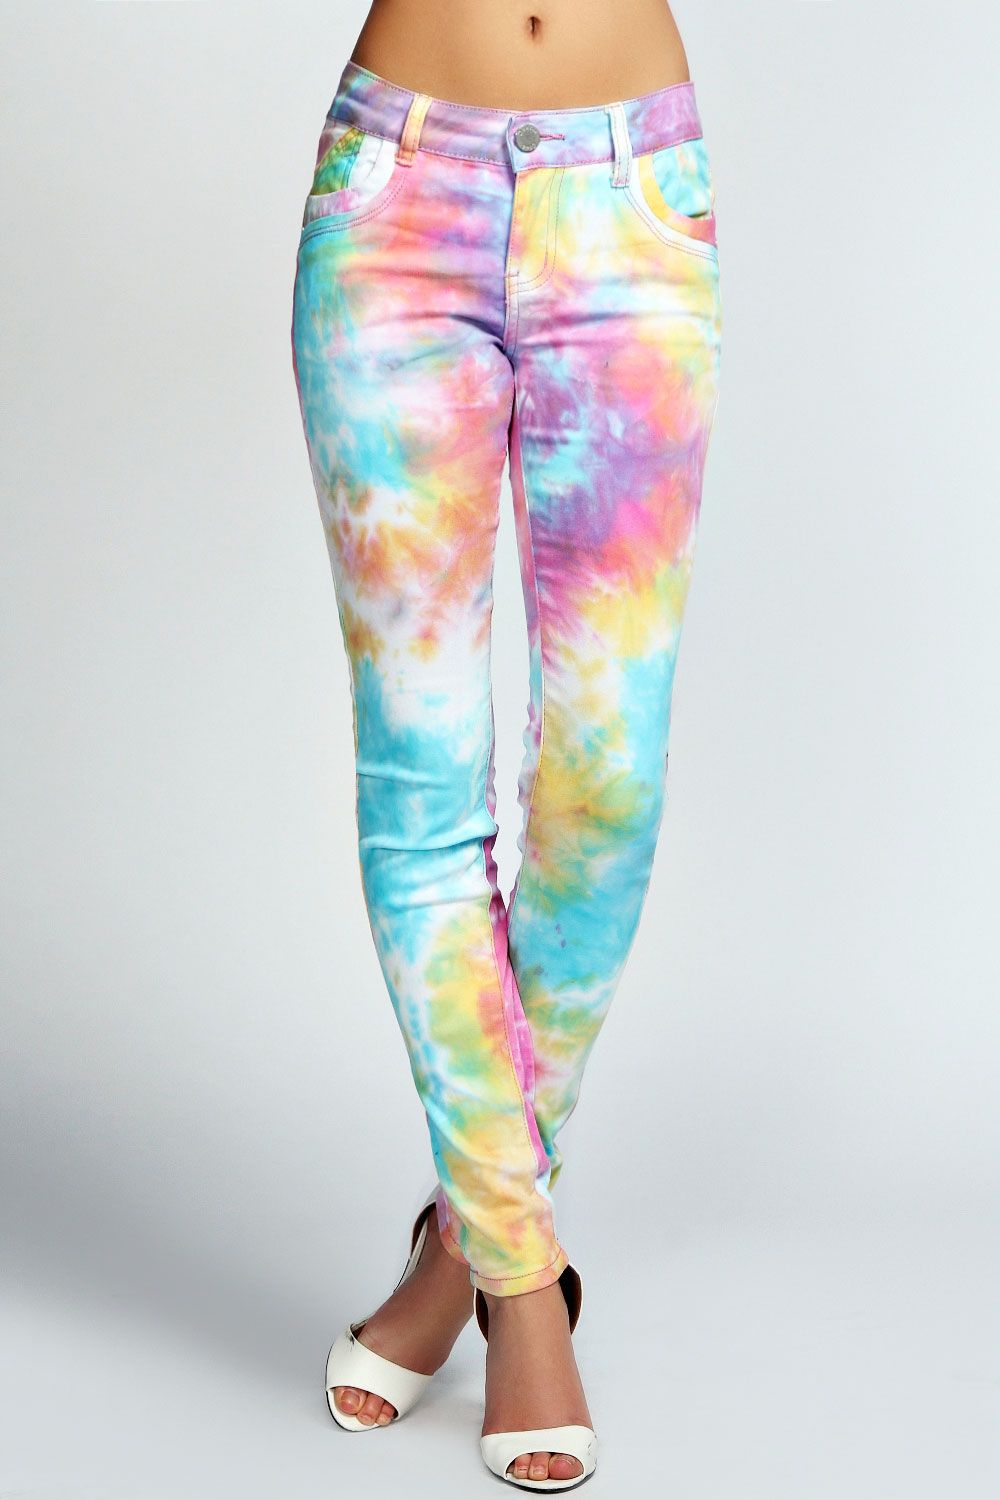 how to tie dye sweatpants with food coloring